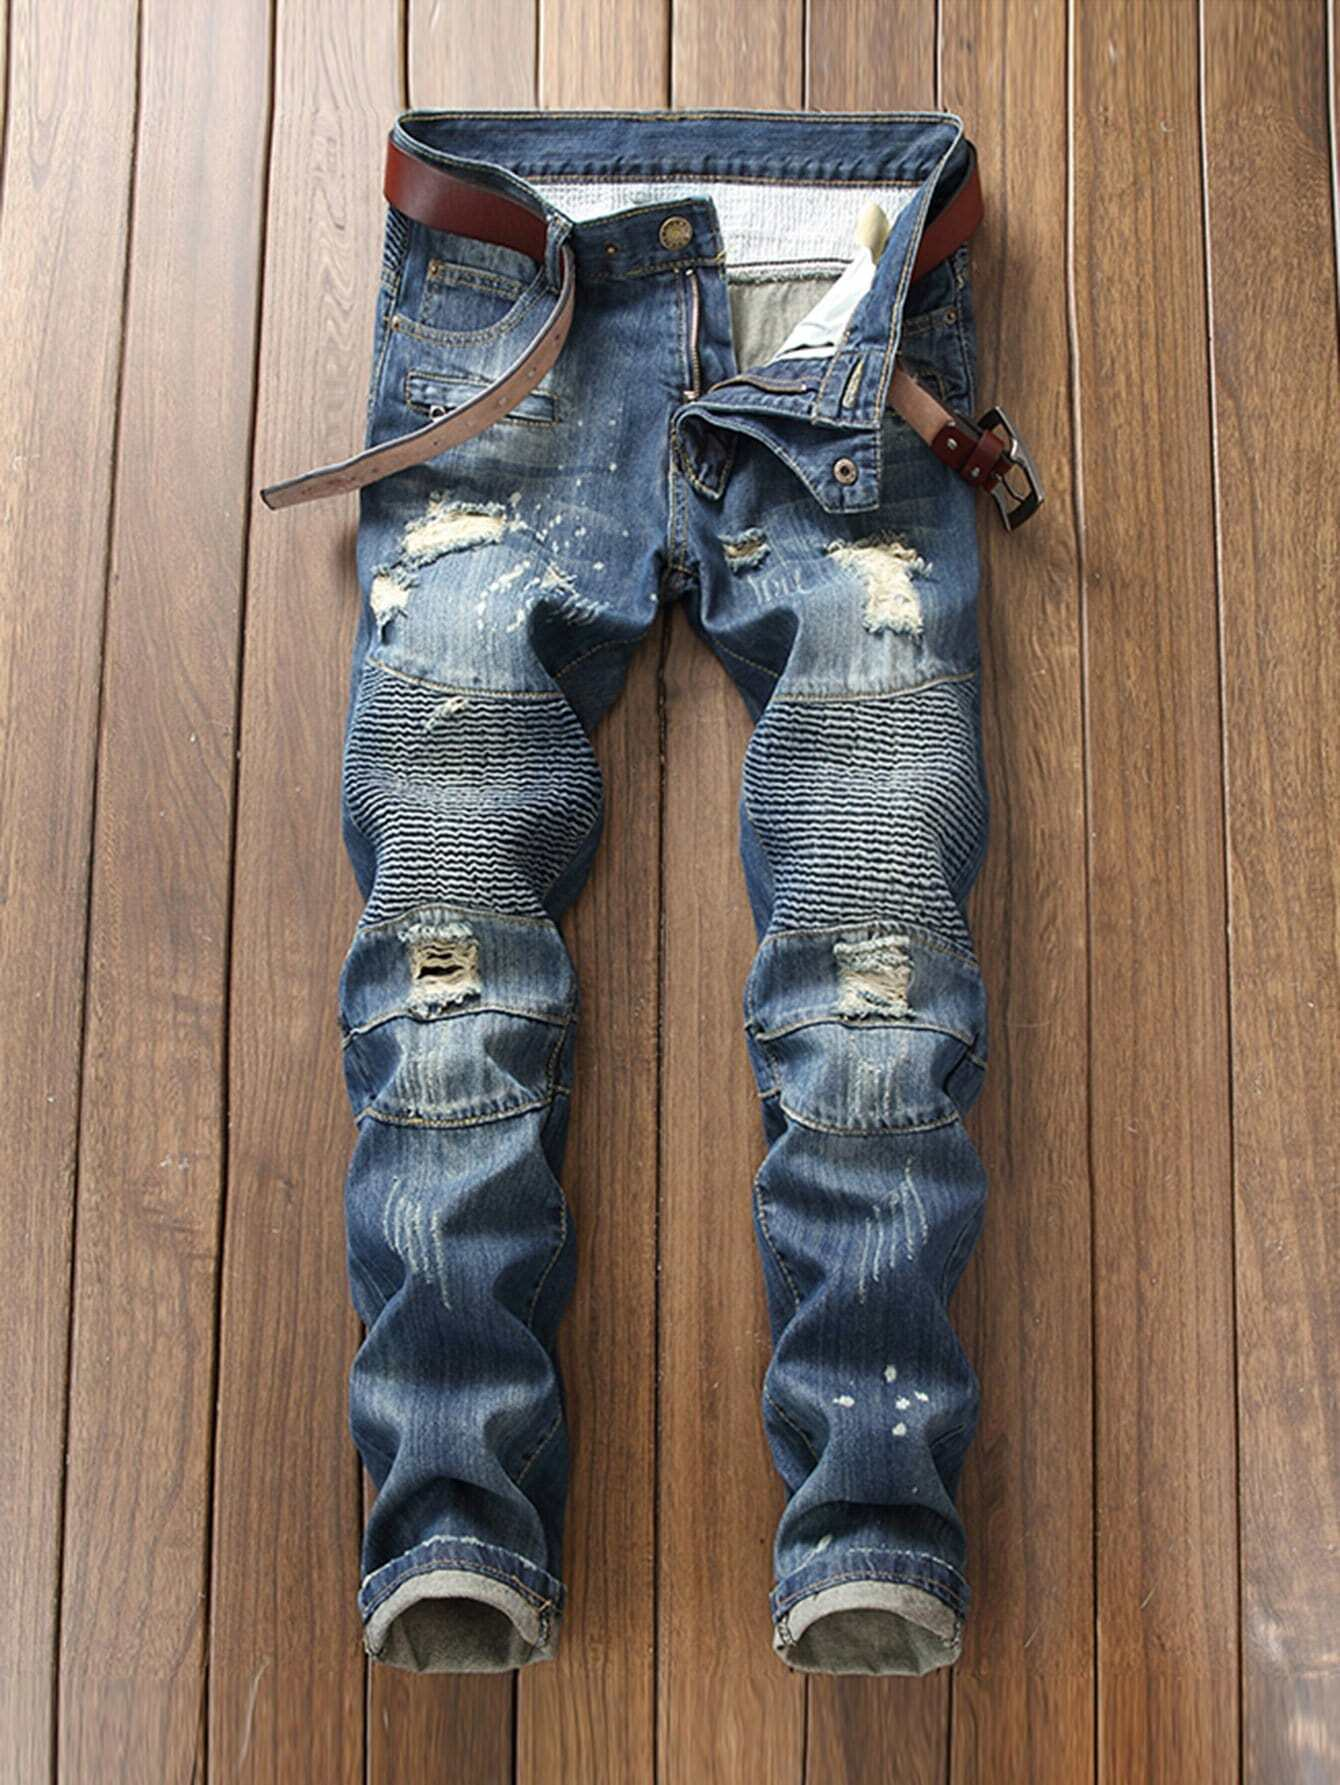 Men Ripped Biker Jeans nostalgia retro design fashion men jeans european stylish dimensional knee frayed hole destroyed ripped jeans men biker jeans